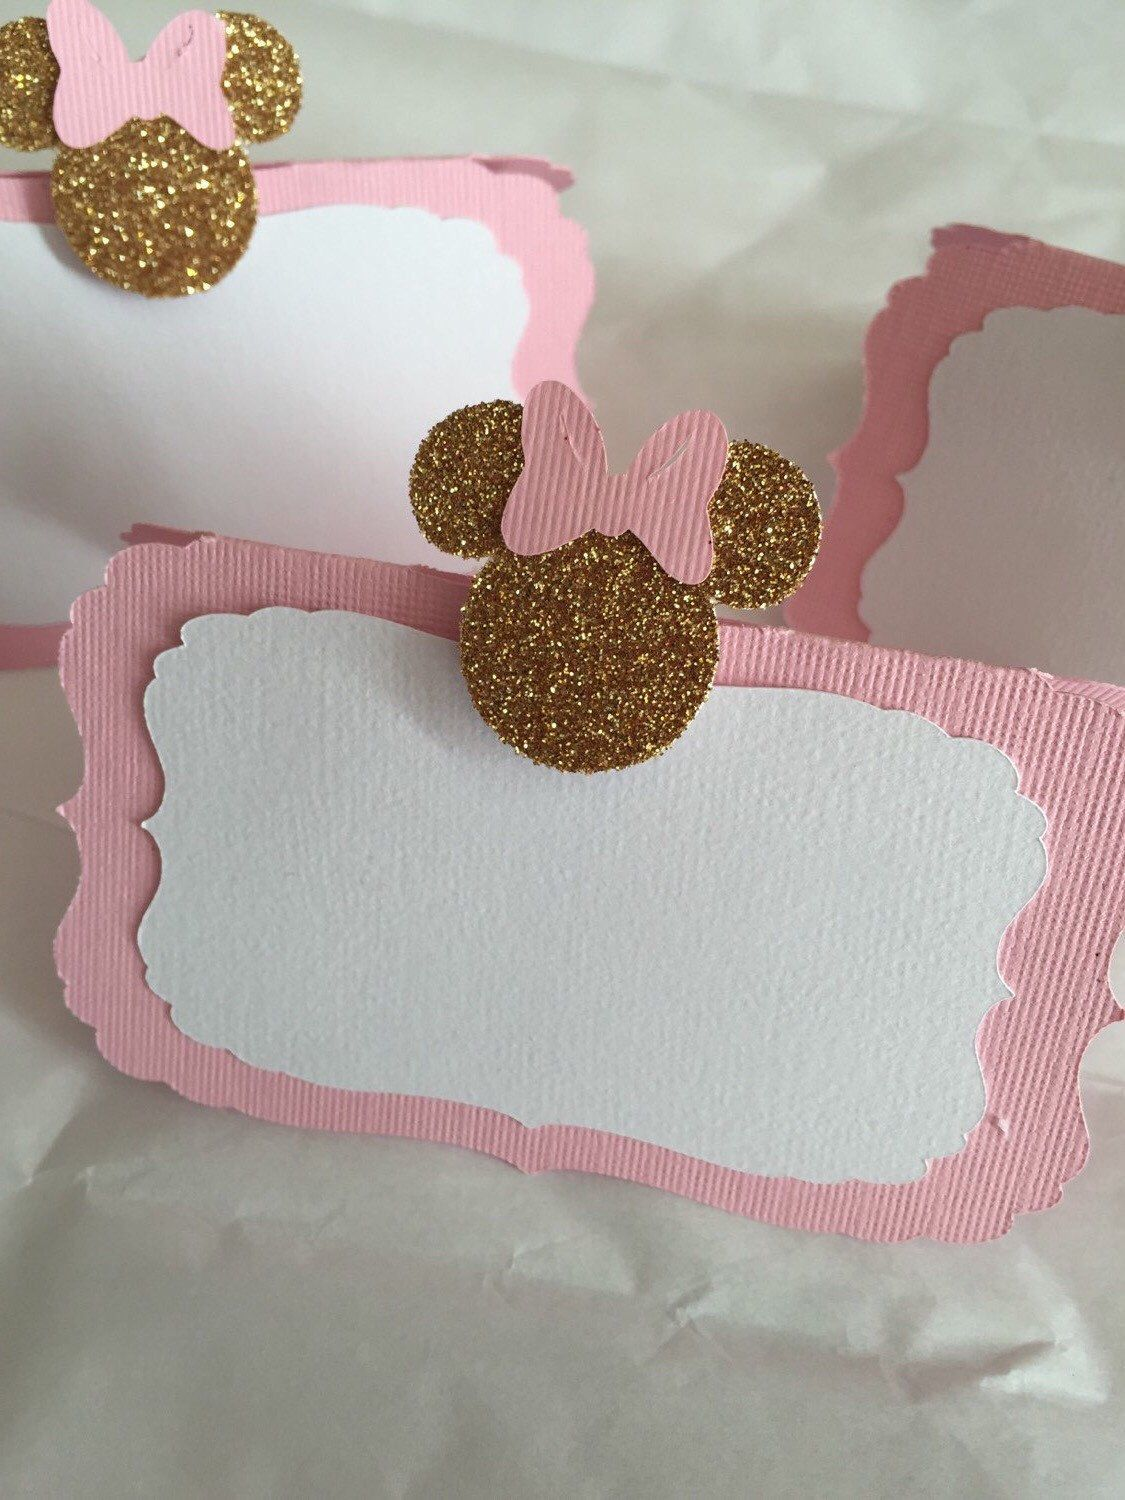 Pin by Melodie Del Rio on Birthday parties | Minnie mouse ...